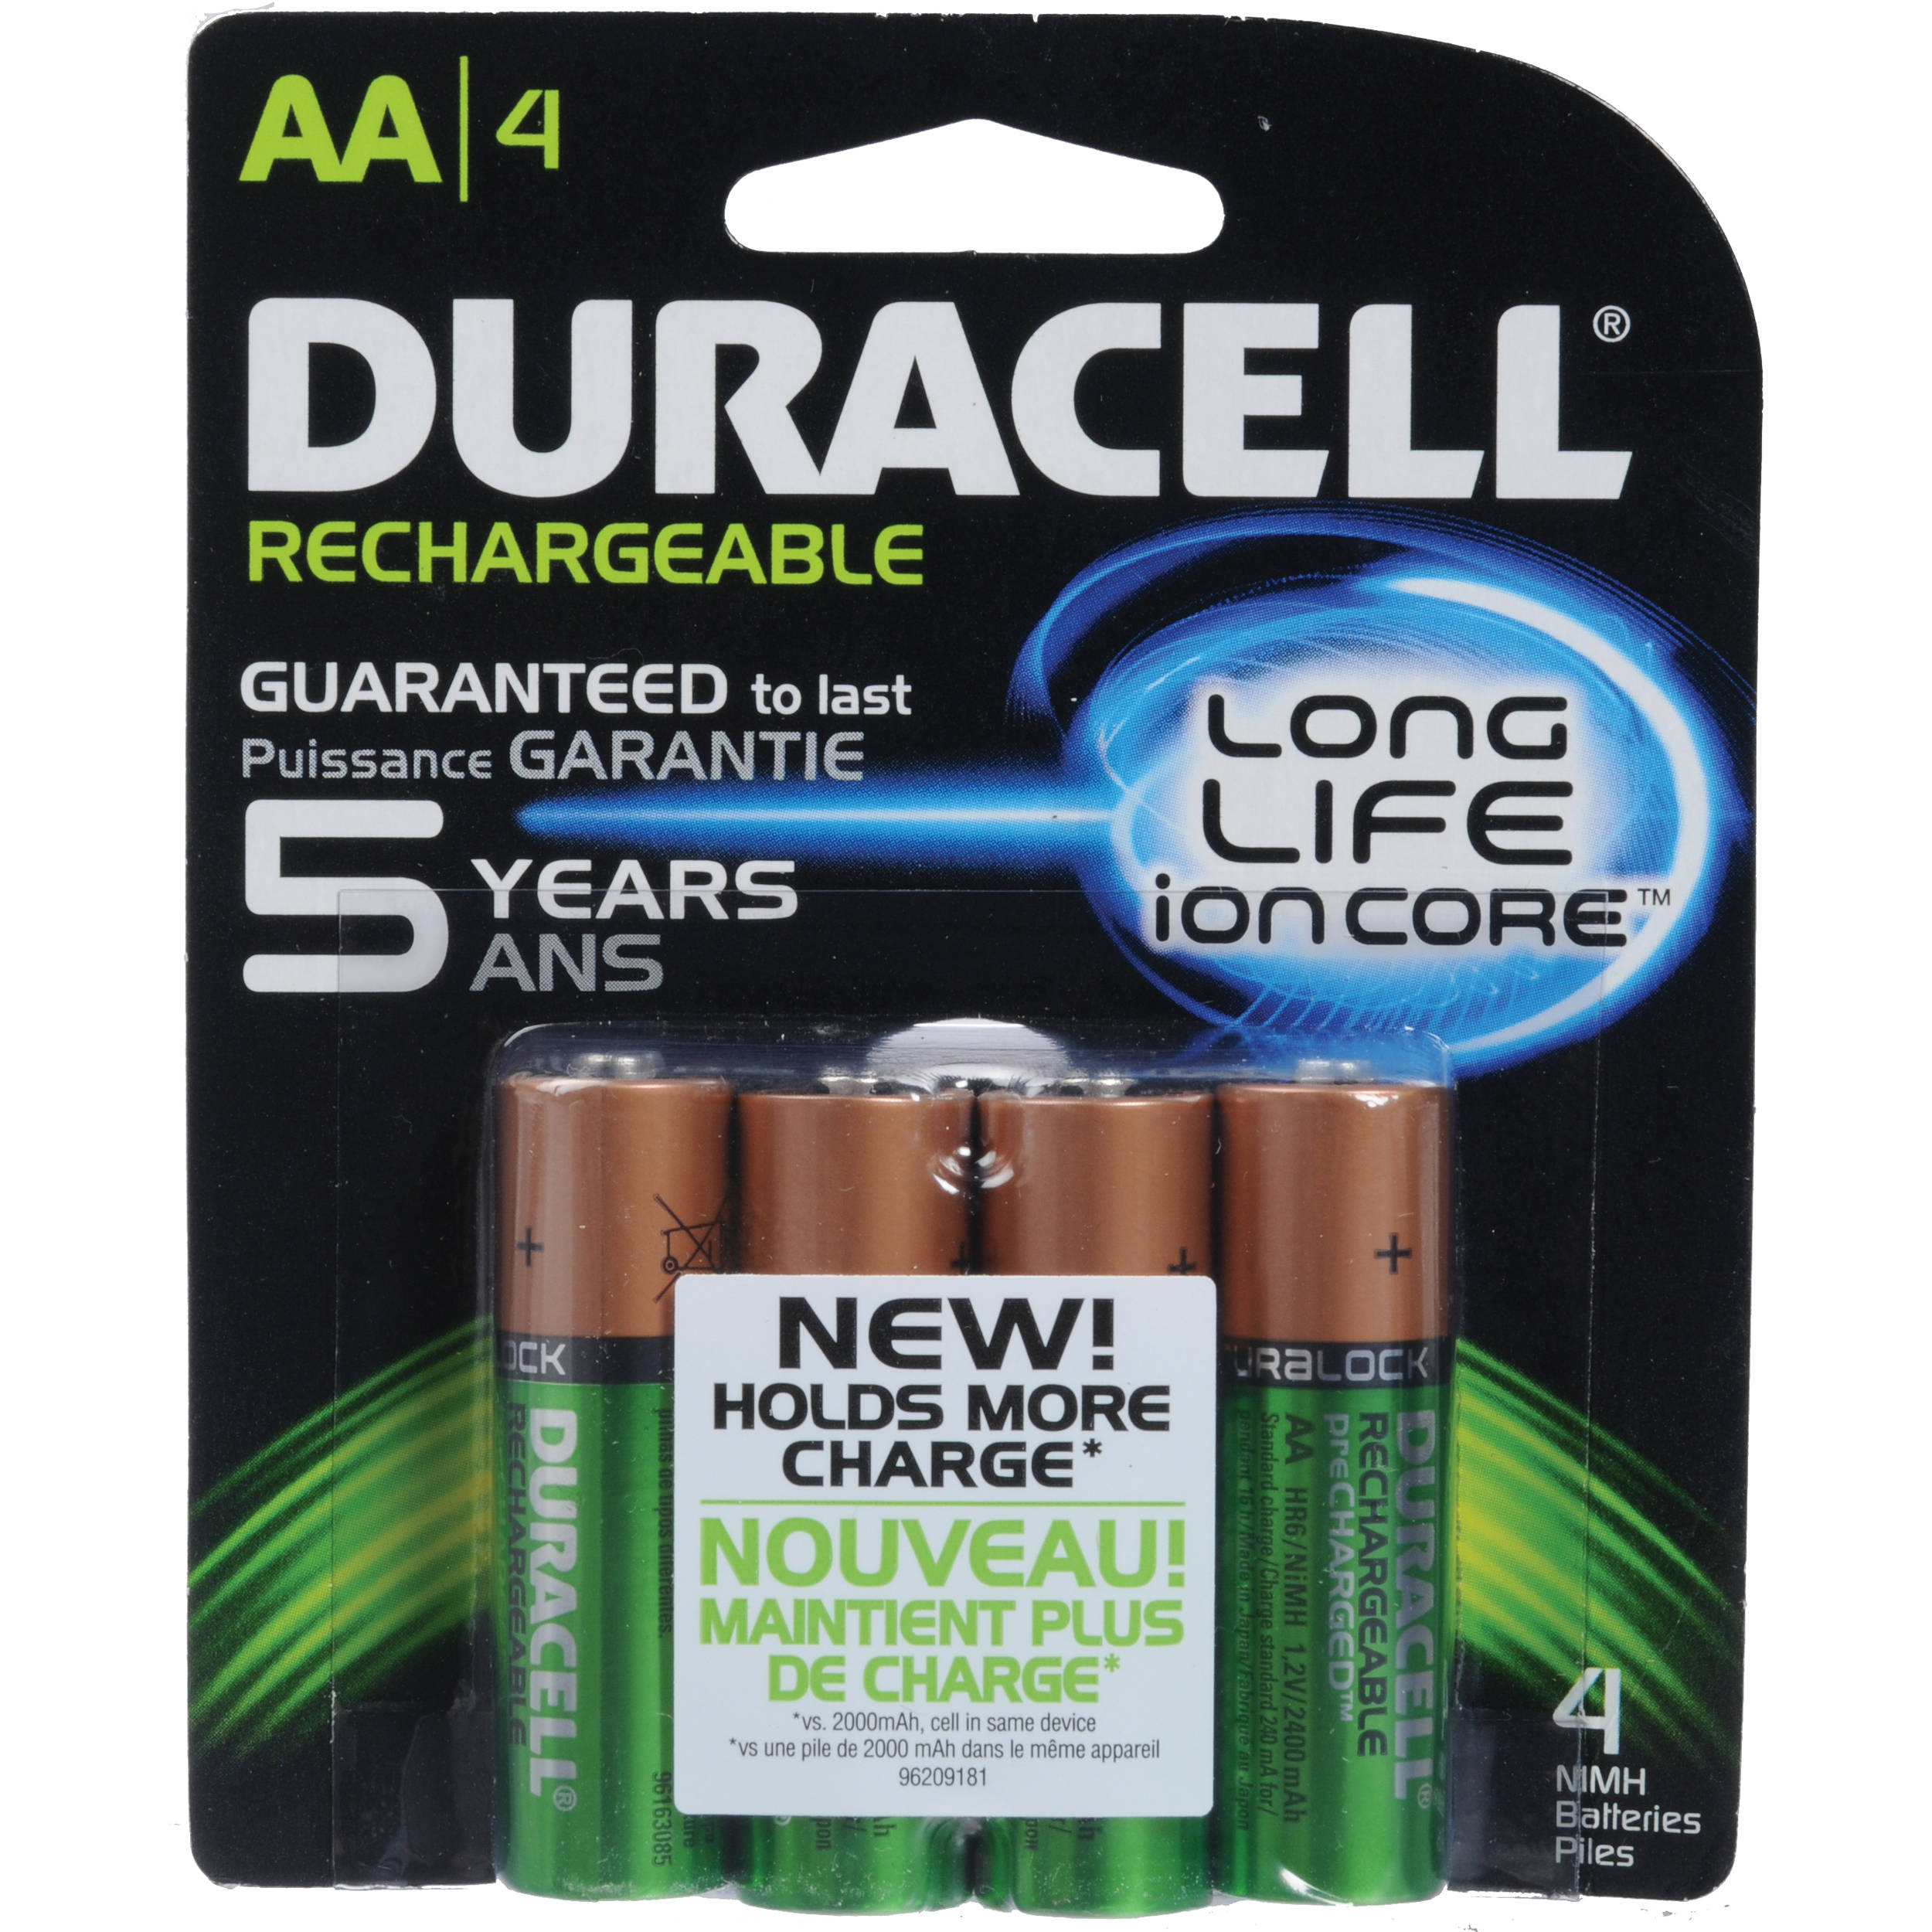 6d2f452fa14 Duracell AA NiMH Pre-Charged Rechargeable Batteries DX1500B4N